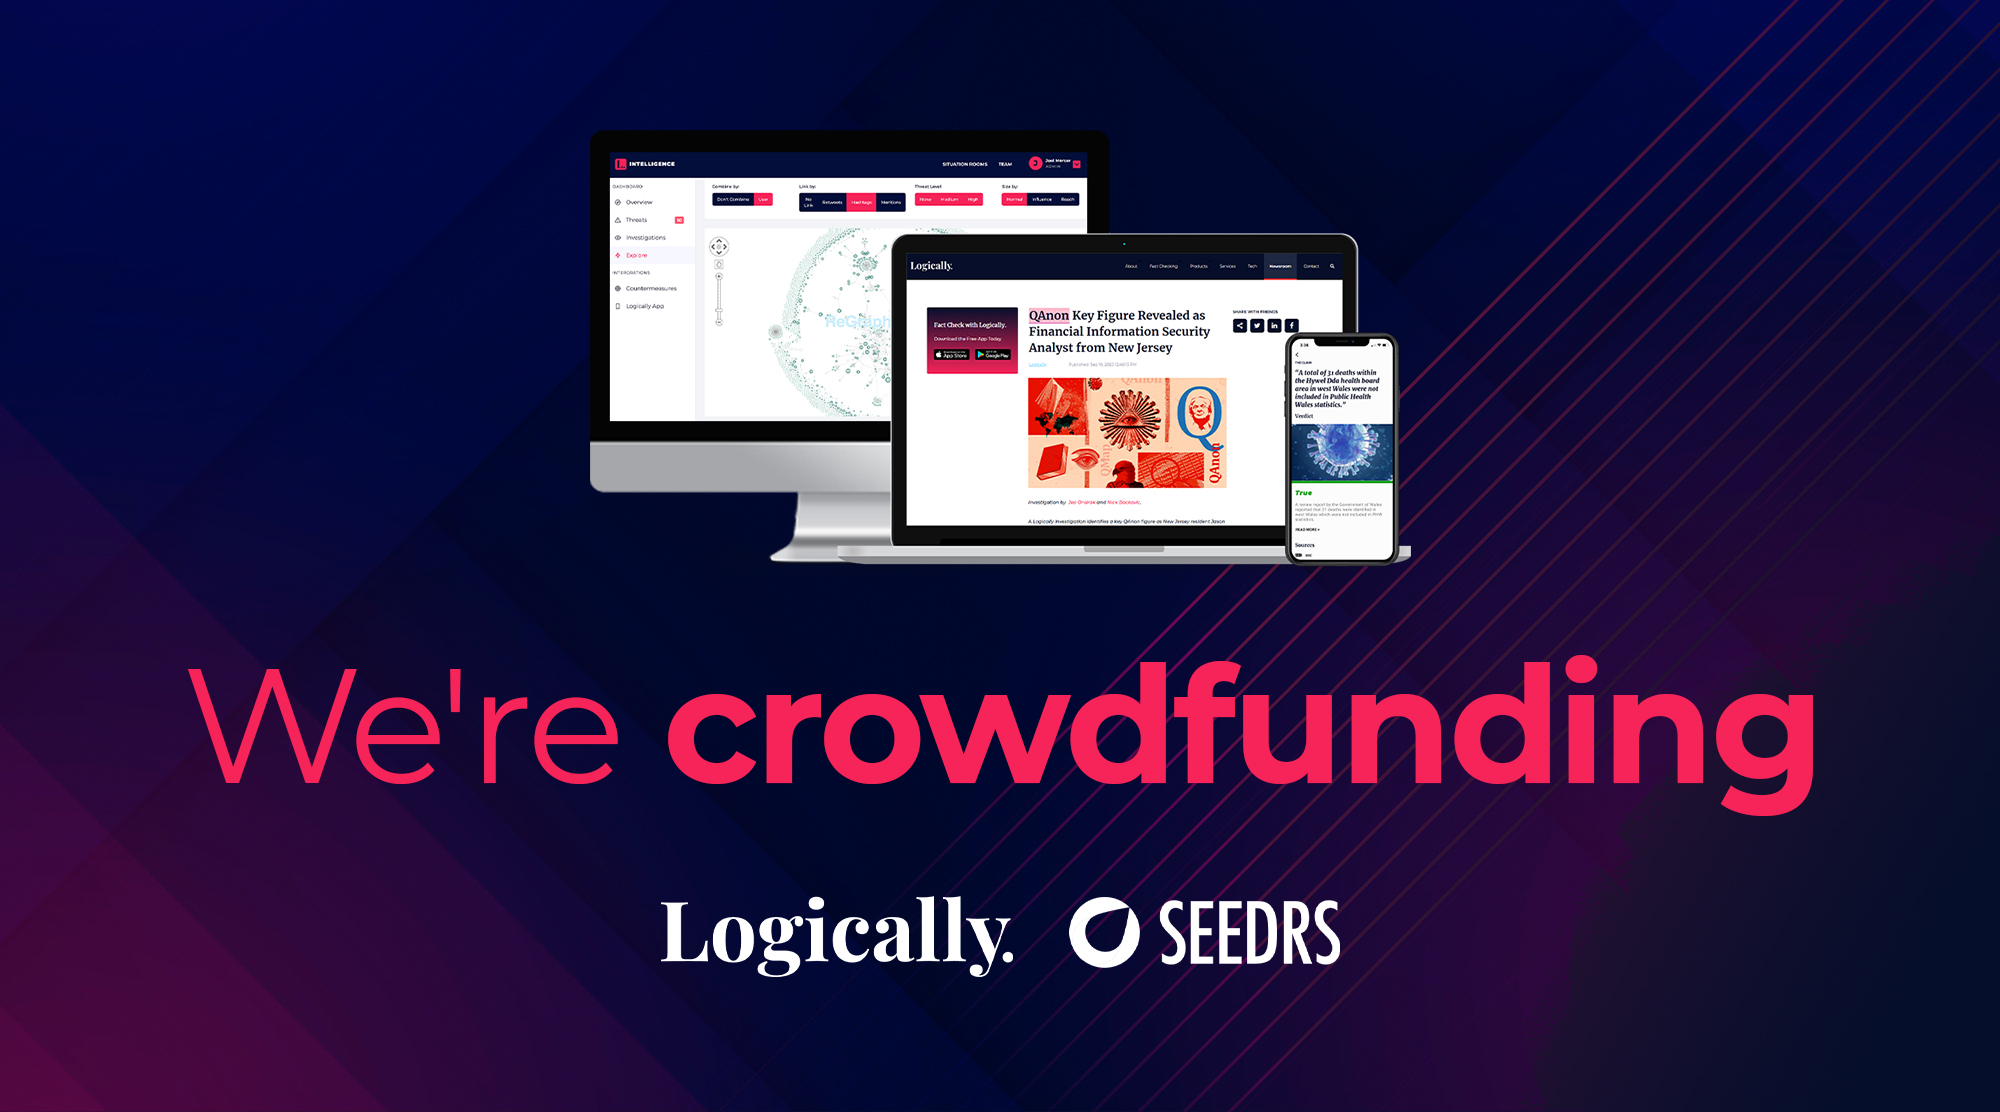 Logically Crowdfunding Seedrs Campaign